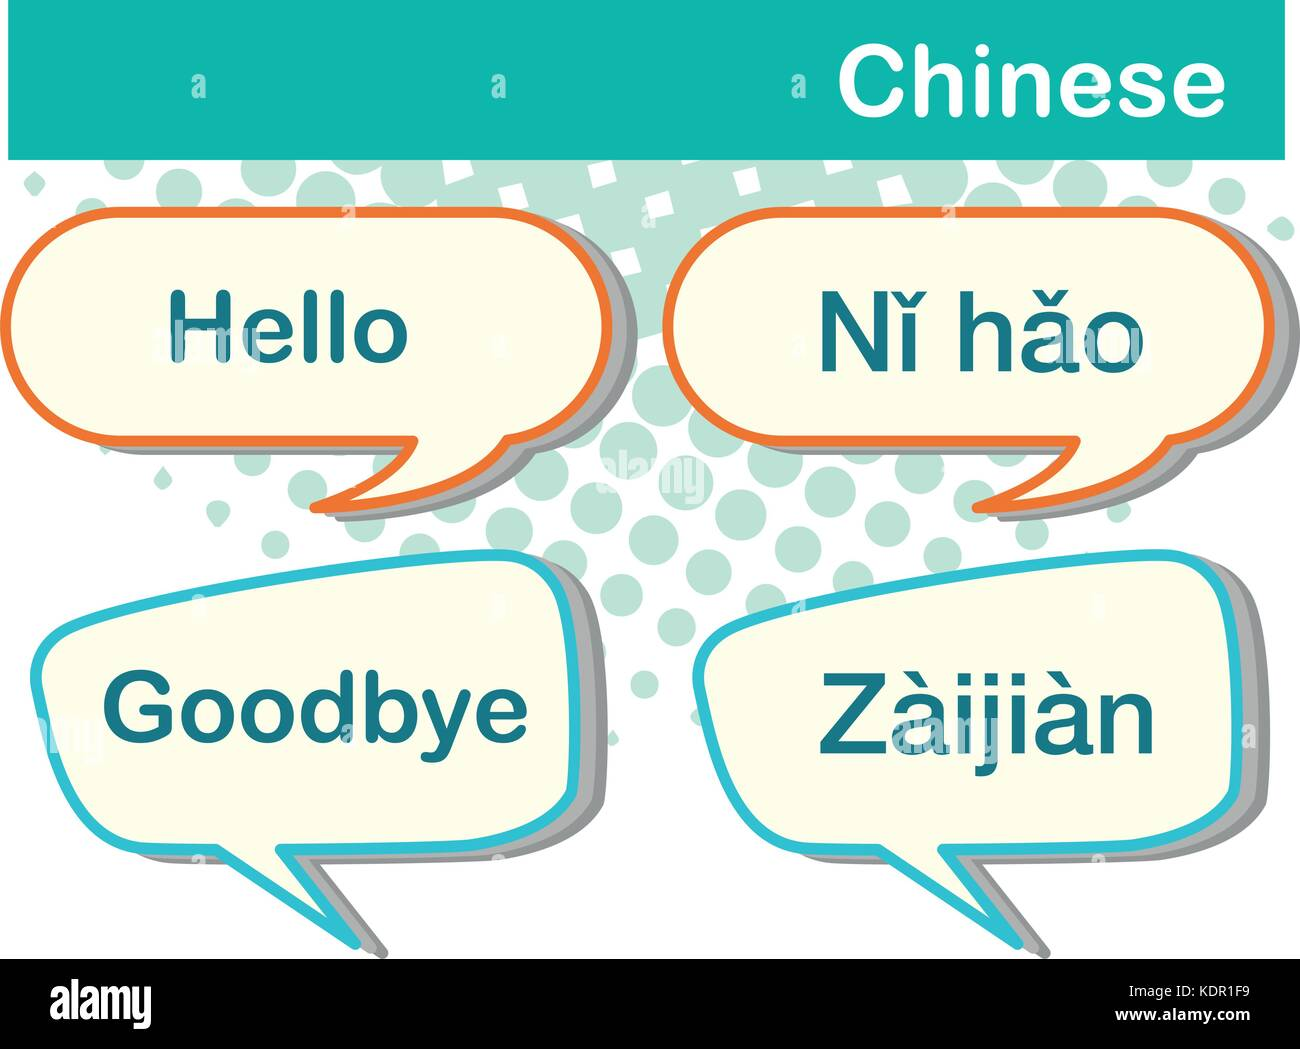 Greeting words in chinese language illustration stock vector art greeting words in chinese language illustration m4hsunfo